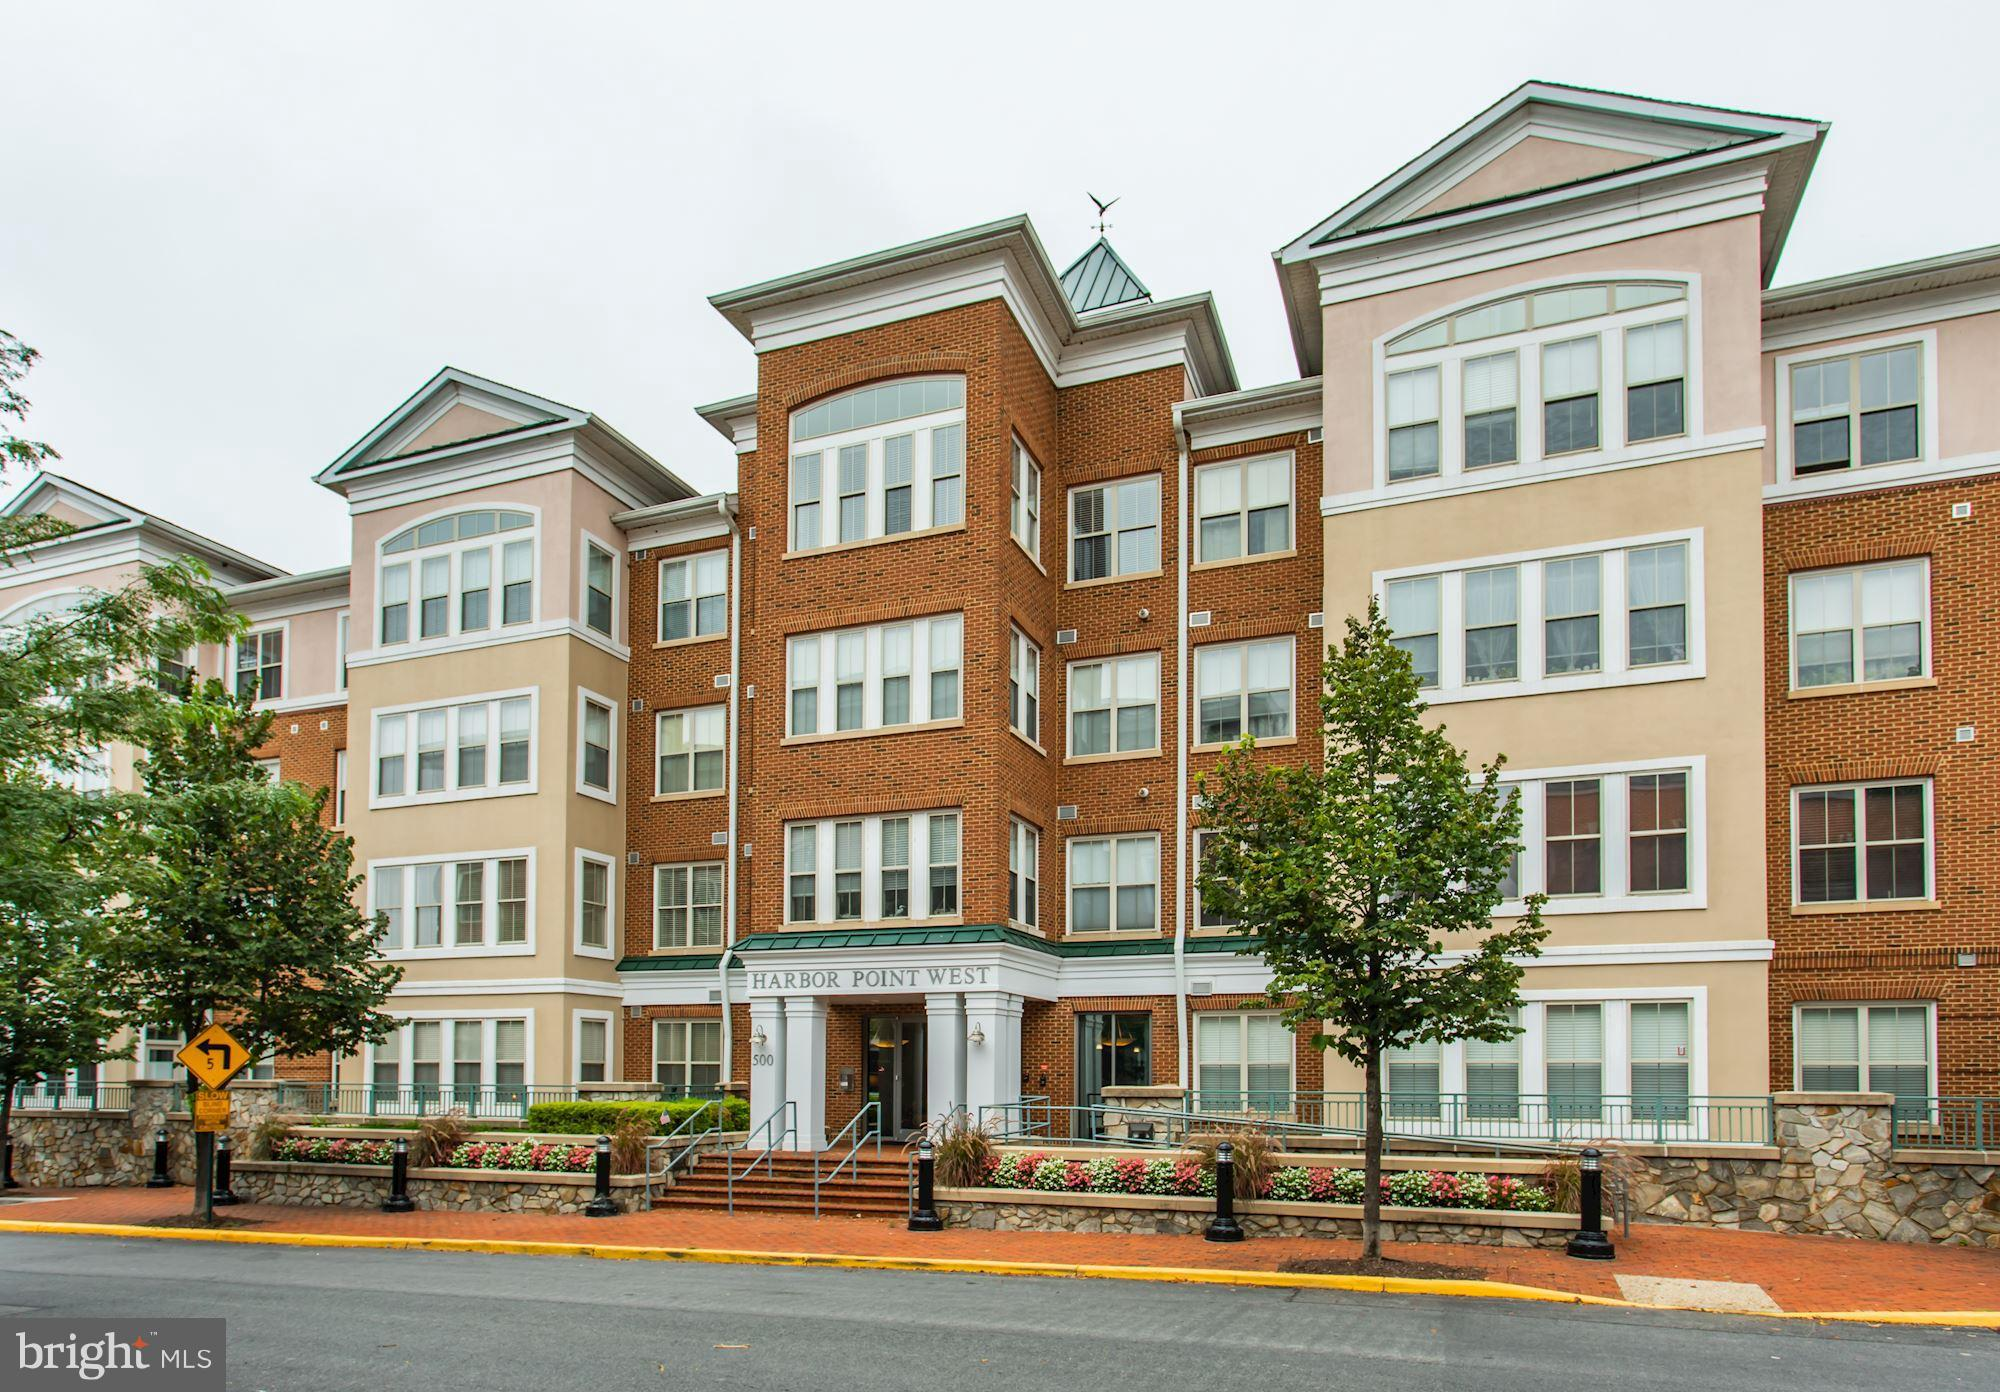 This Beautiful top floor condo w/sunroom & view of the Marina is located in Belmont Bay on the Occoquan River! Light,bright, open floor plan with NEW CARPET, FRESHLY PAINTED, hardwood floors, granite & stainless appliances, 2 car garage parking & more. Minutes to VRE, I 95 & Fort Belvoir. Enjoy the nature trail, marina & town center, fitness room, pool & tennis.